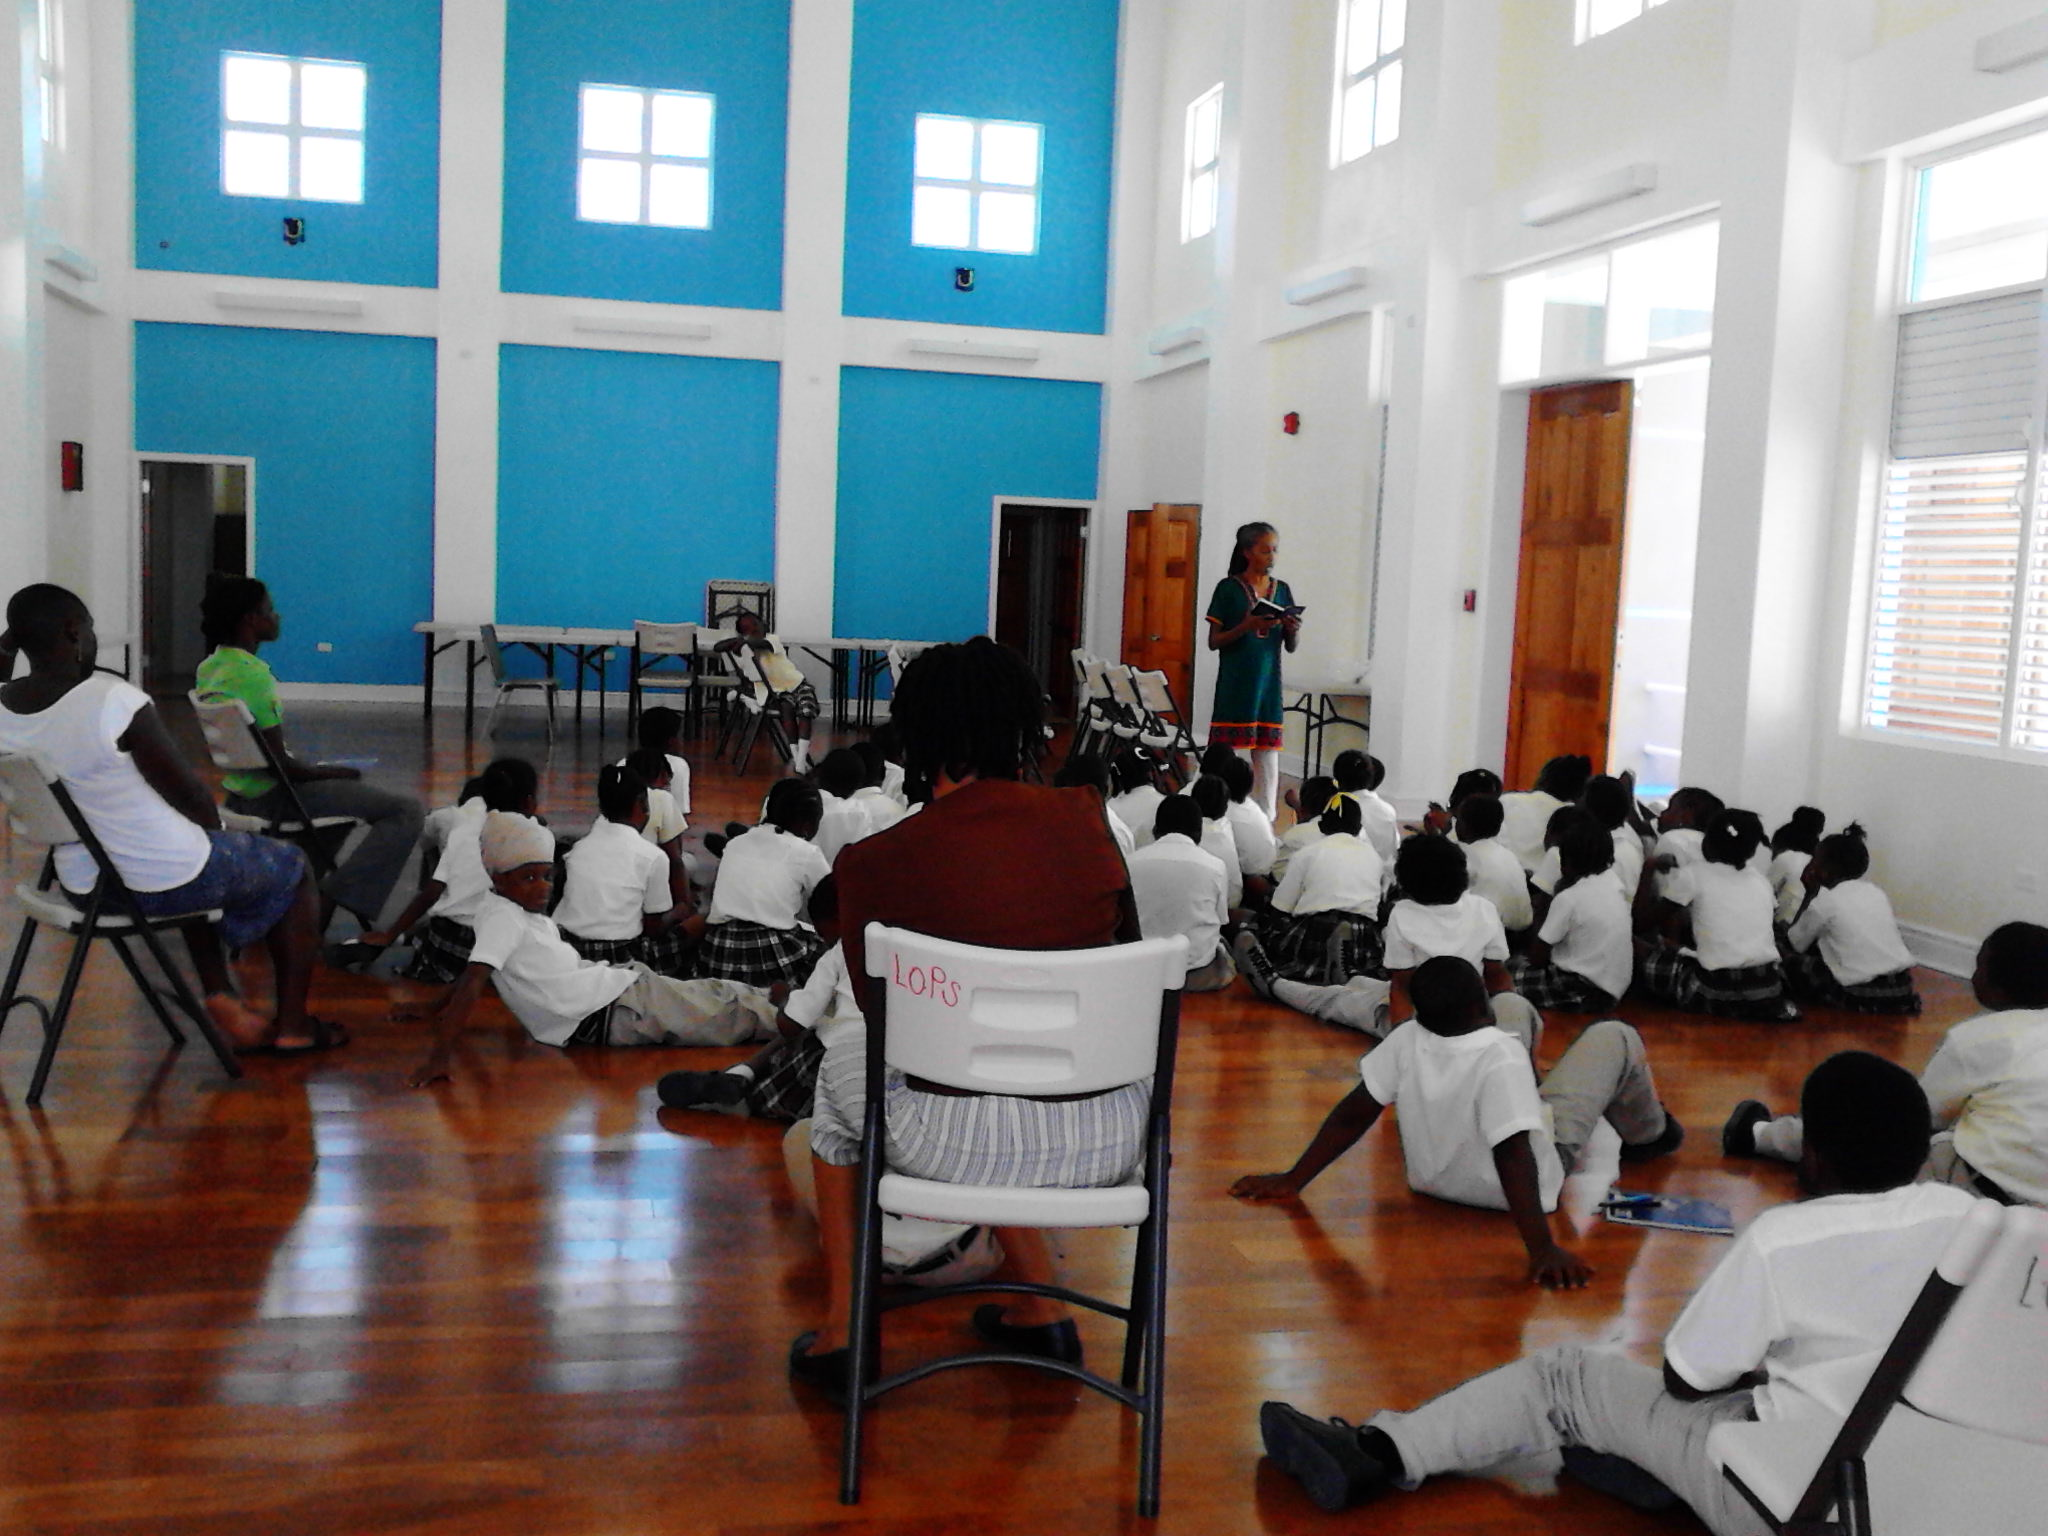 A-dZiko reads to children at Lookout Primary School